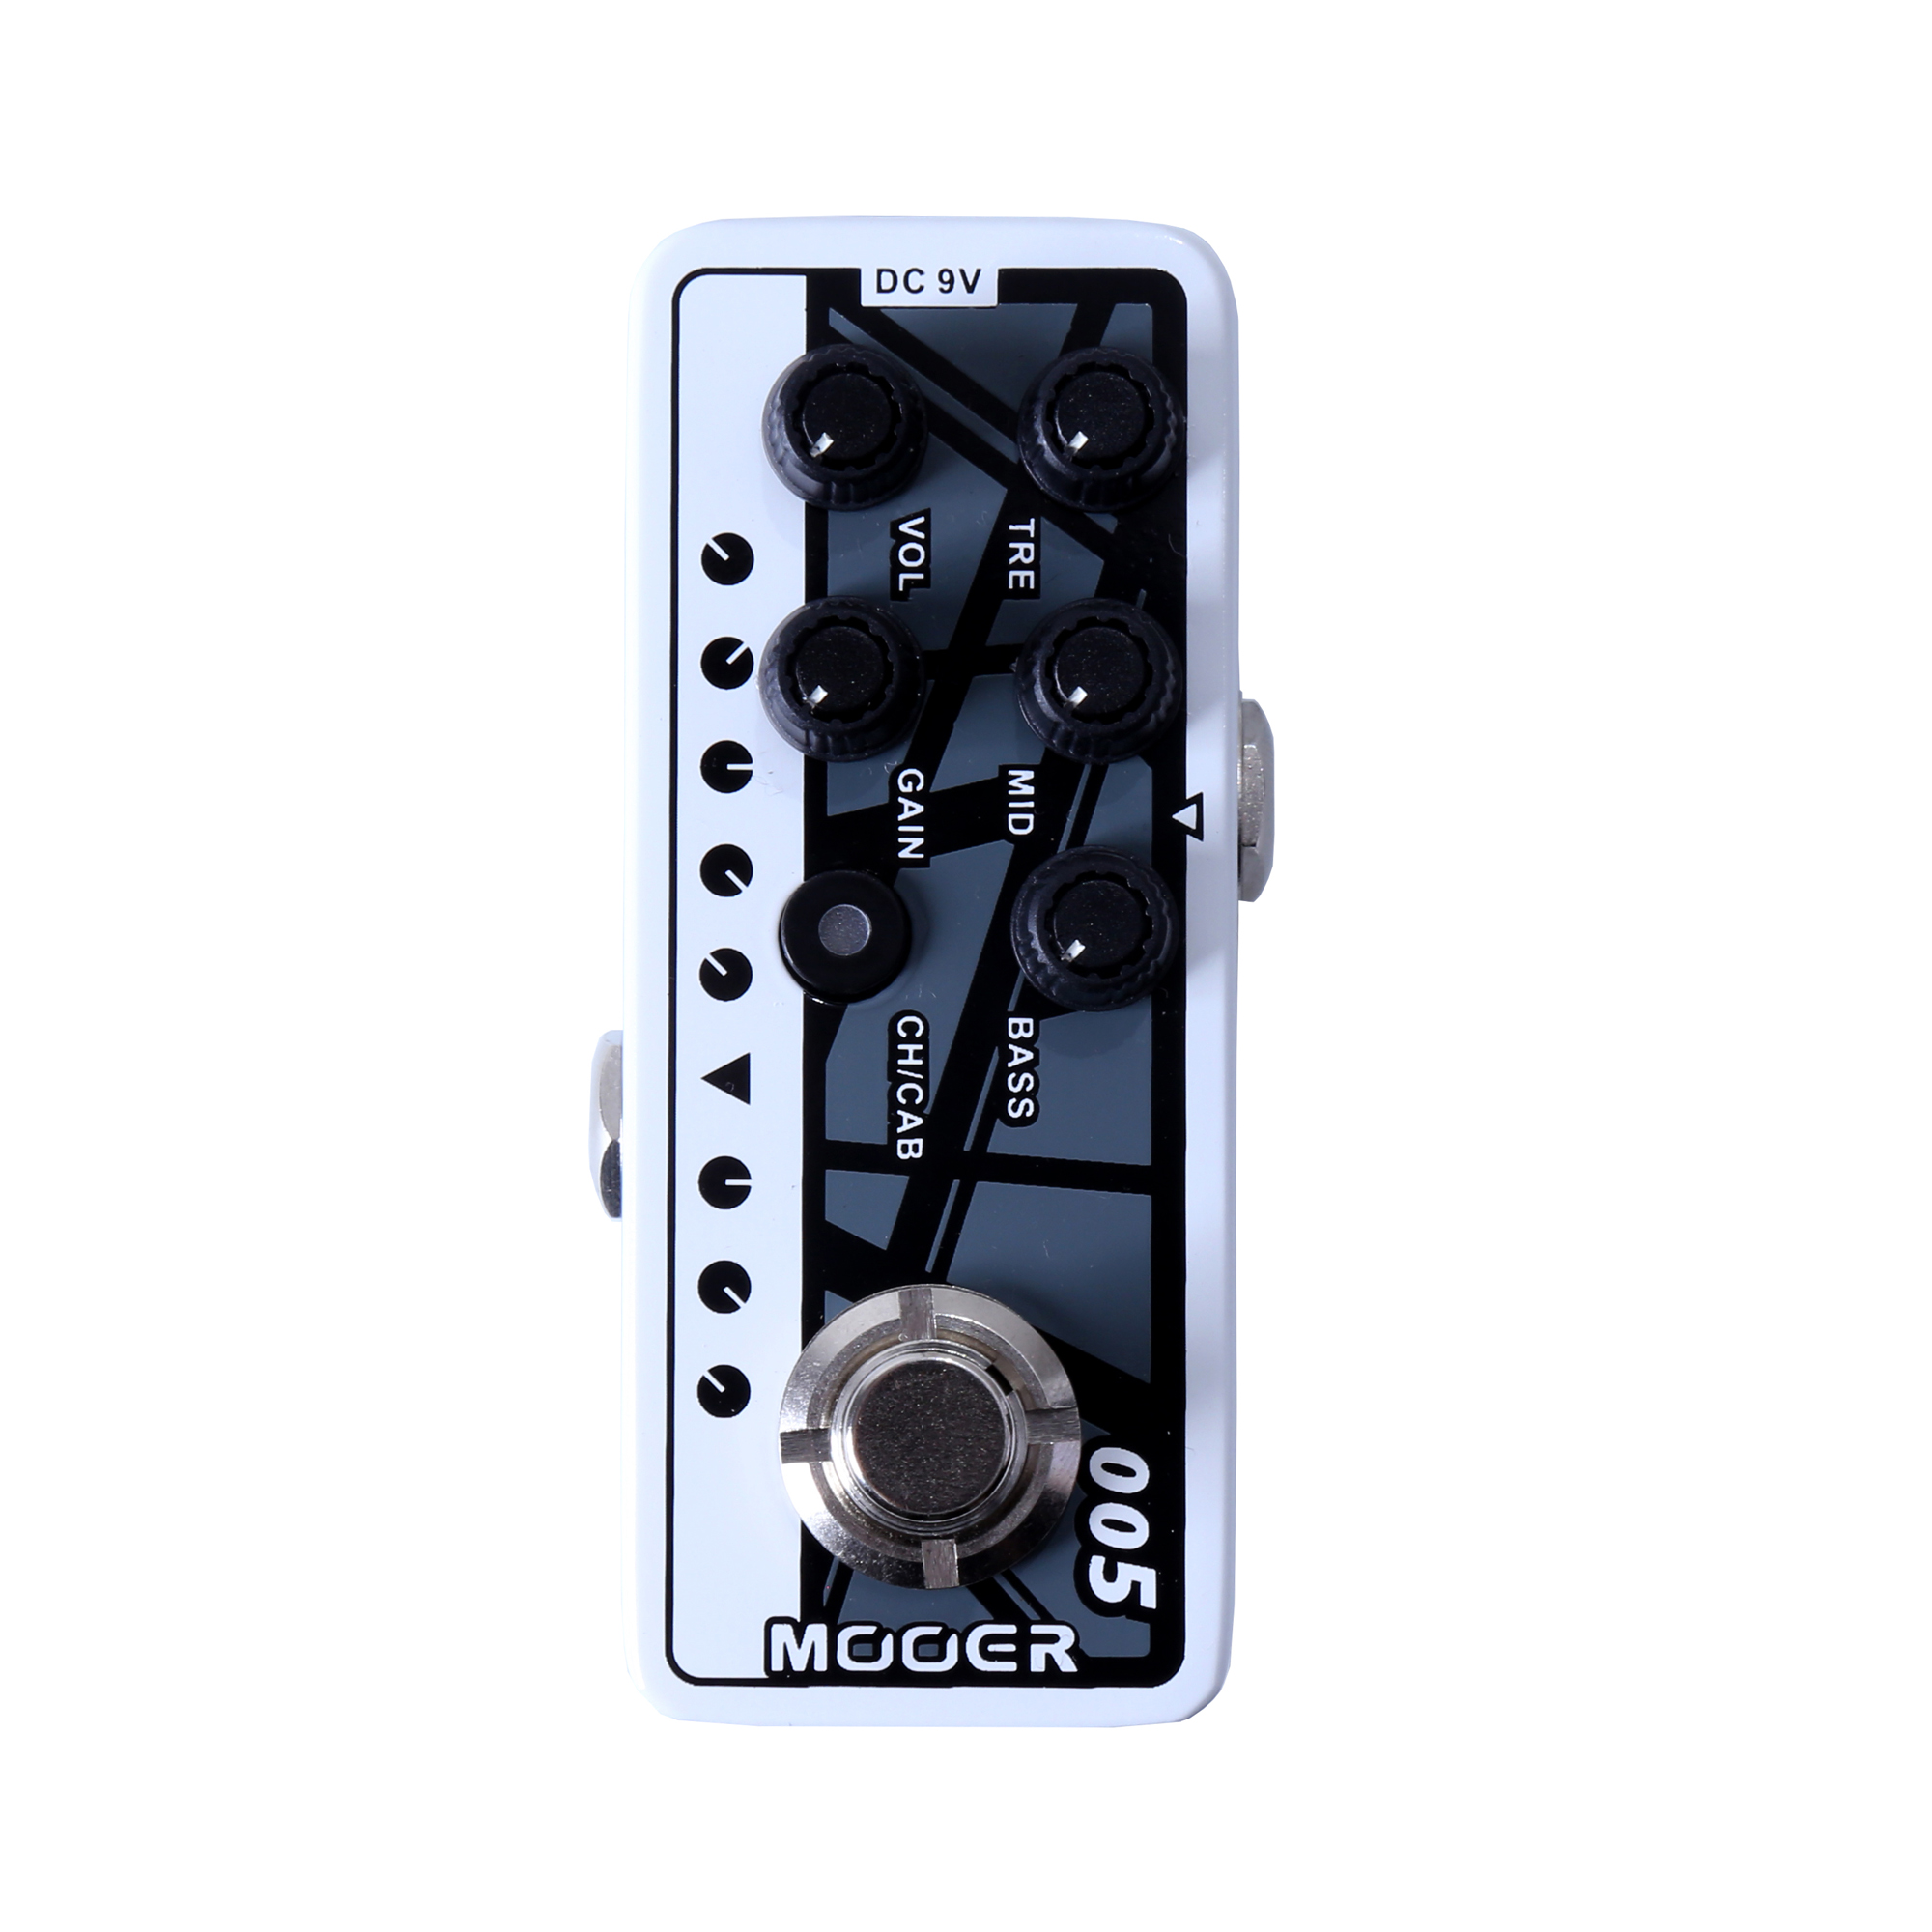 Mooer Fifty-Fifty 3 Guitar Effect Pedal Channel Preamp Micro Dual Volume Controls 3 Band EQ Gain Electric Bass 005 mooer 002 uk gold 900 micro preamp dual channel 3 band eq gain volume controls guitar effect pedal with free gift